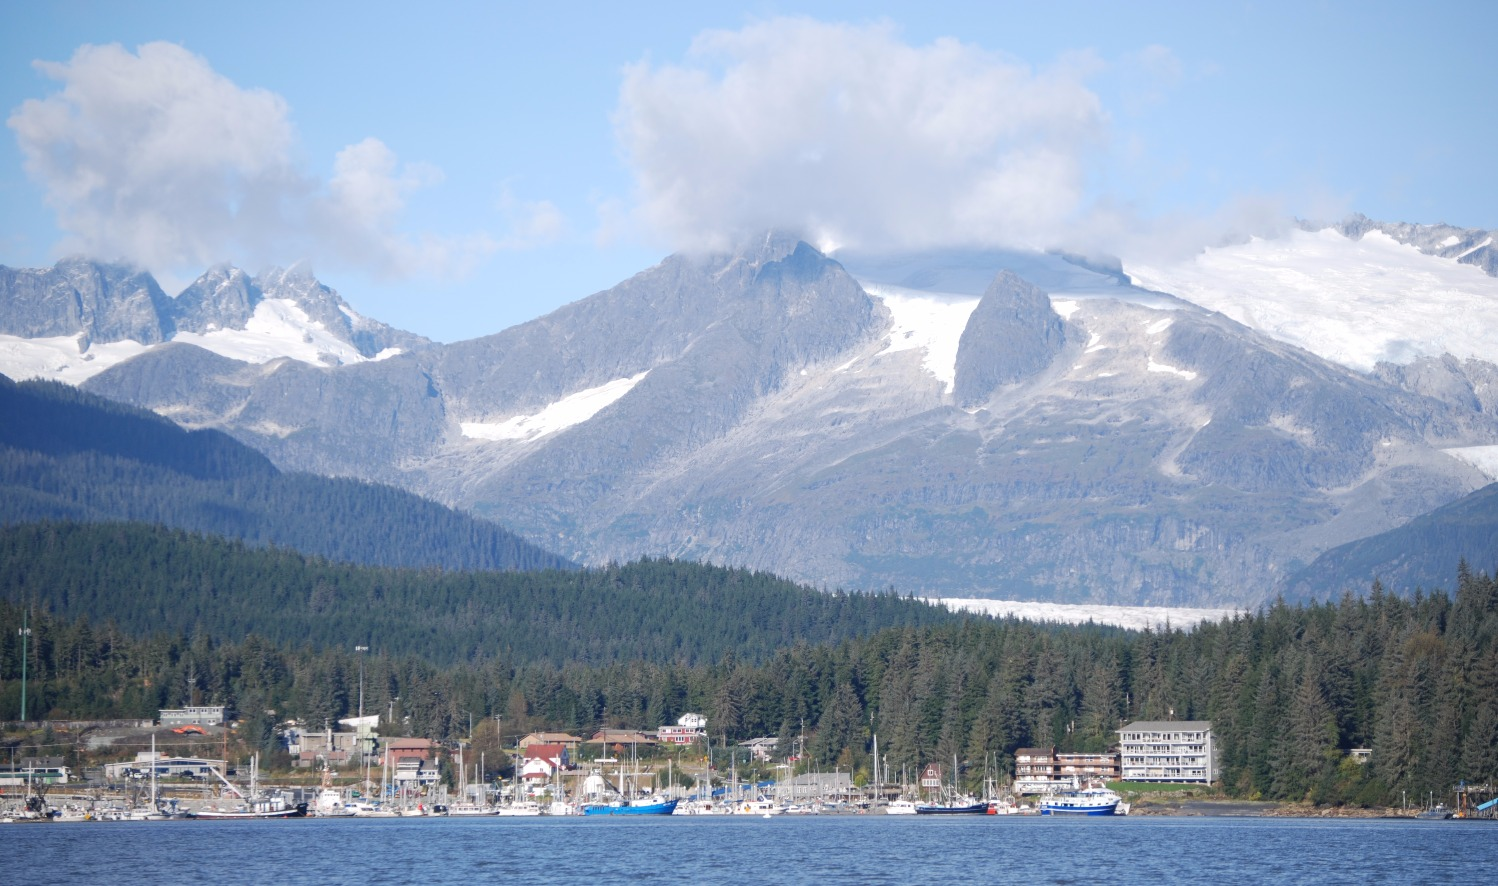 Returning to Auke Bay